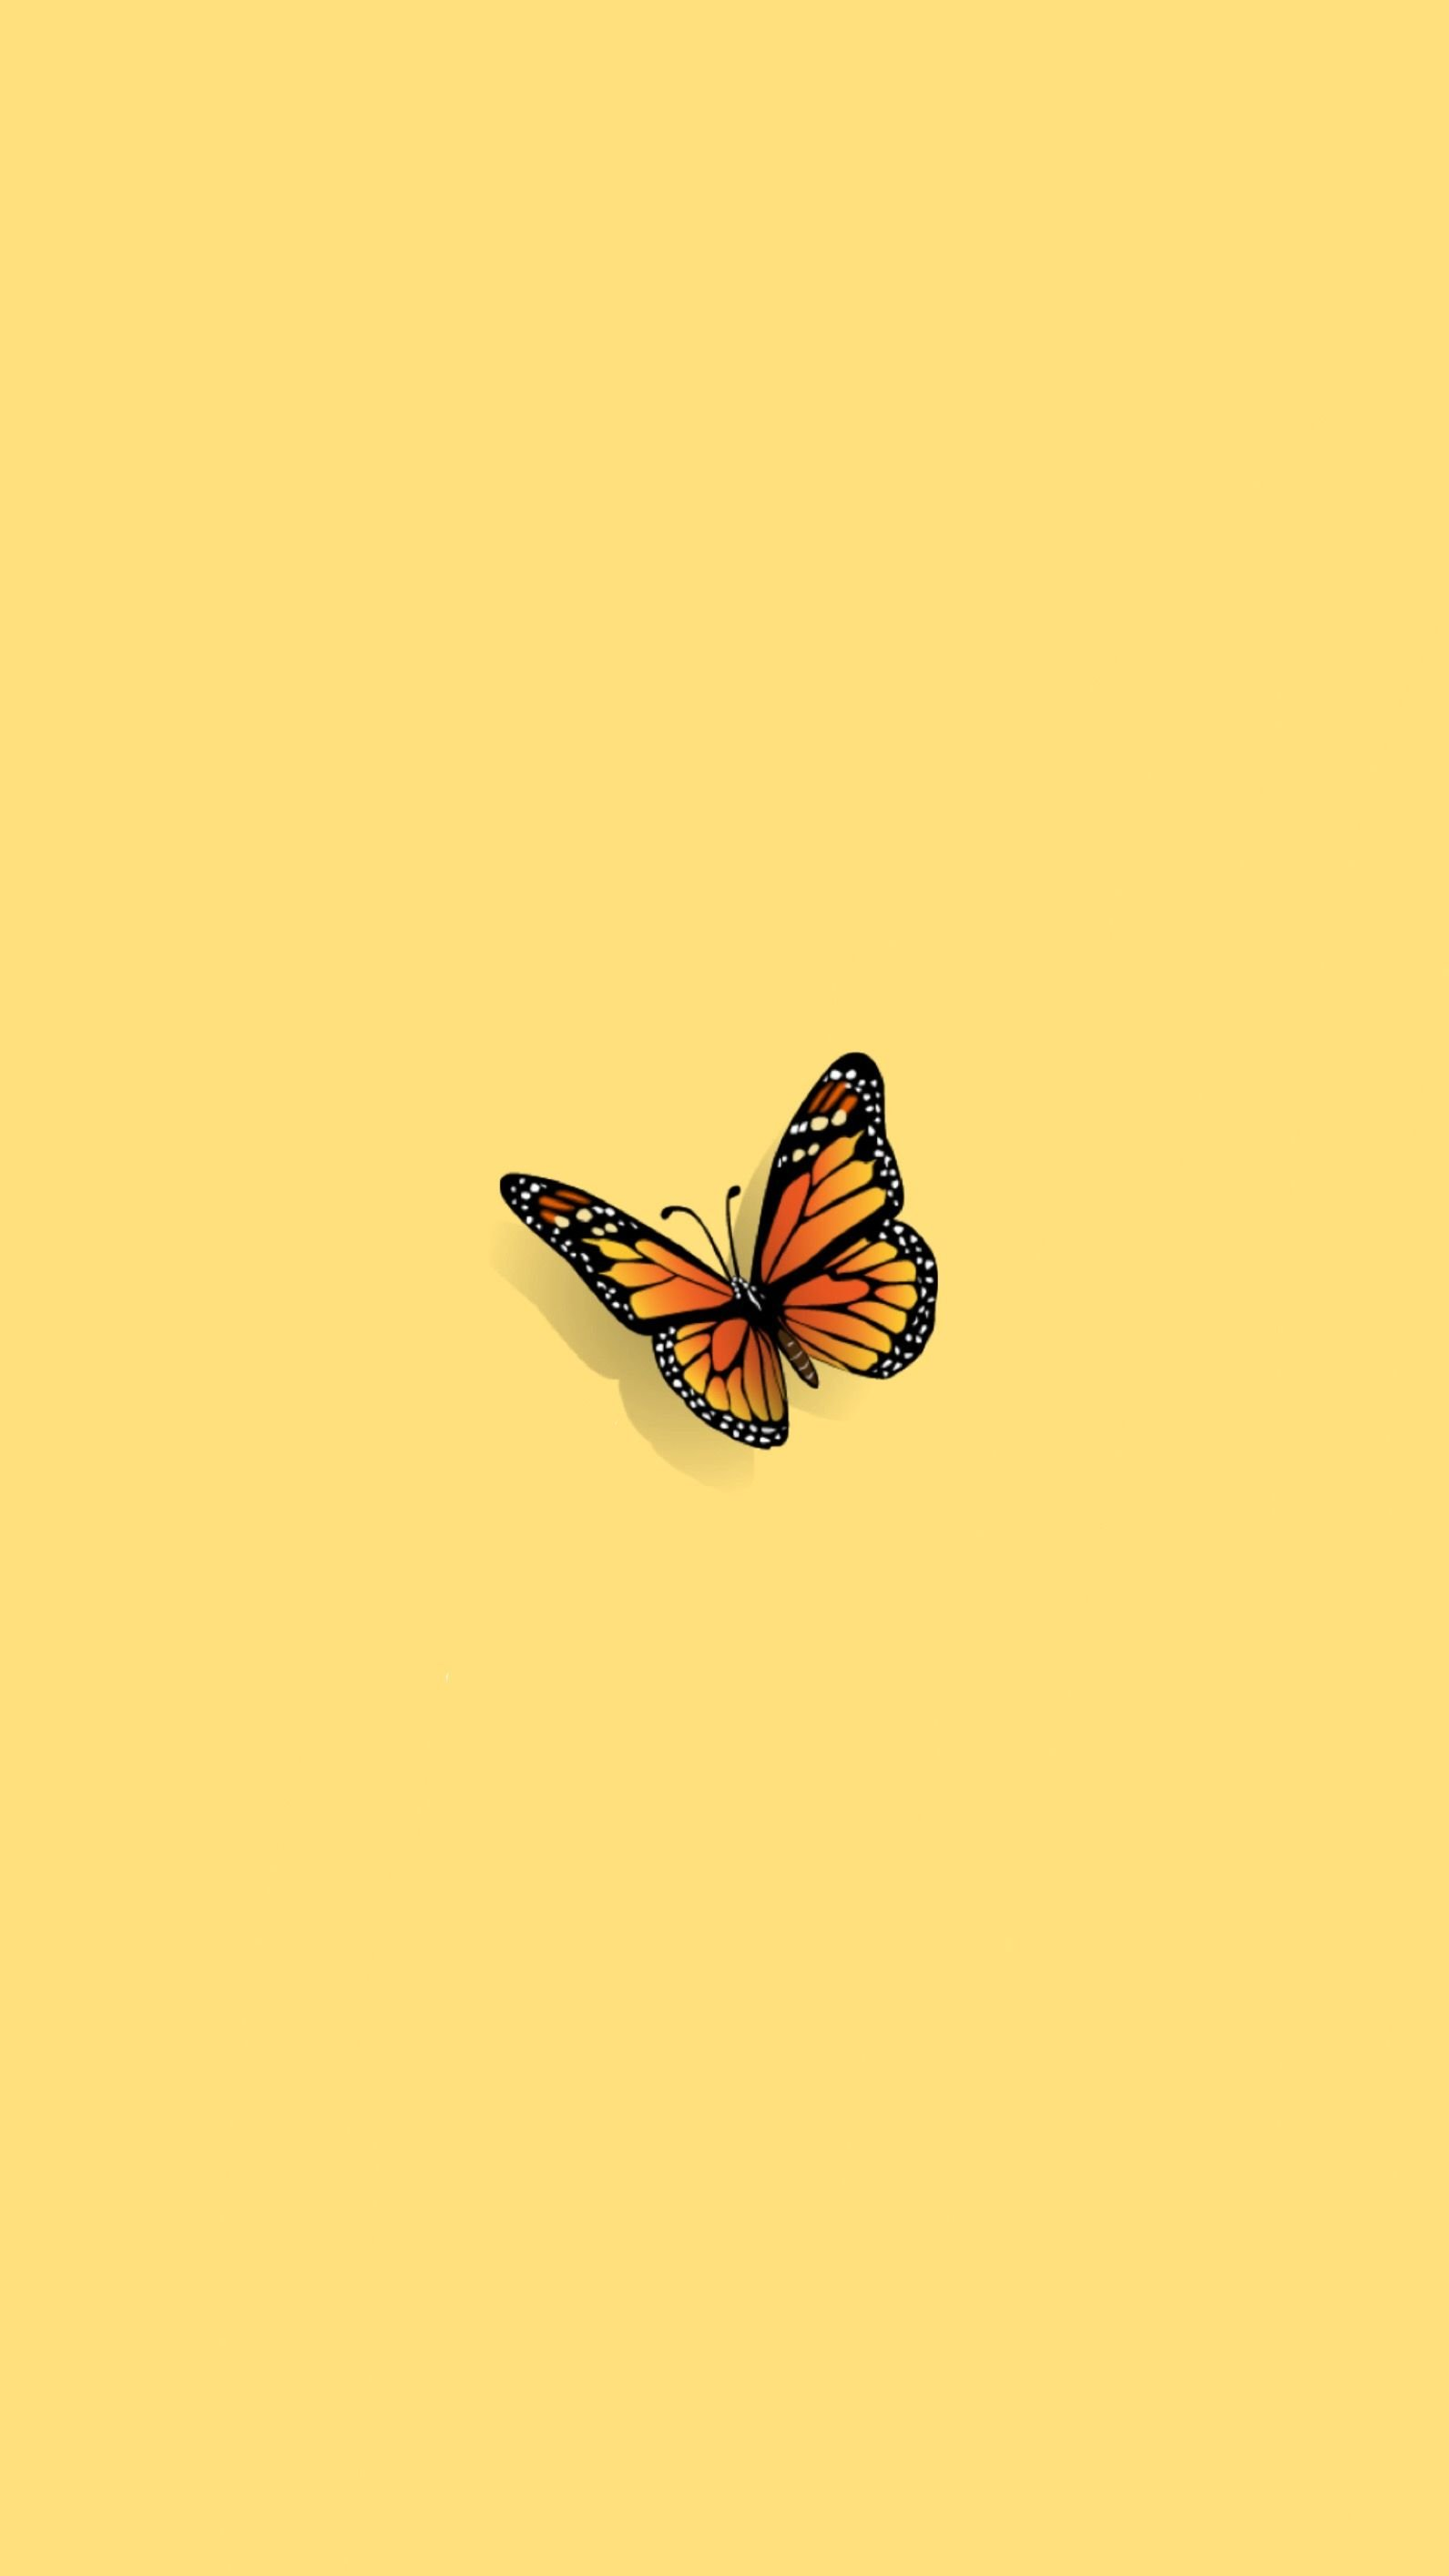 Butterfly Aesthetics Wallpapers - Wallpaper Cave